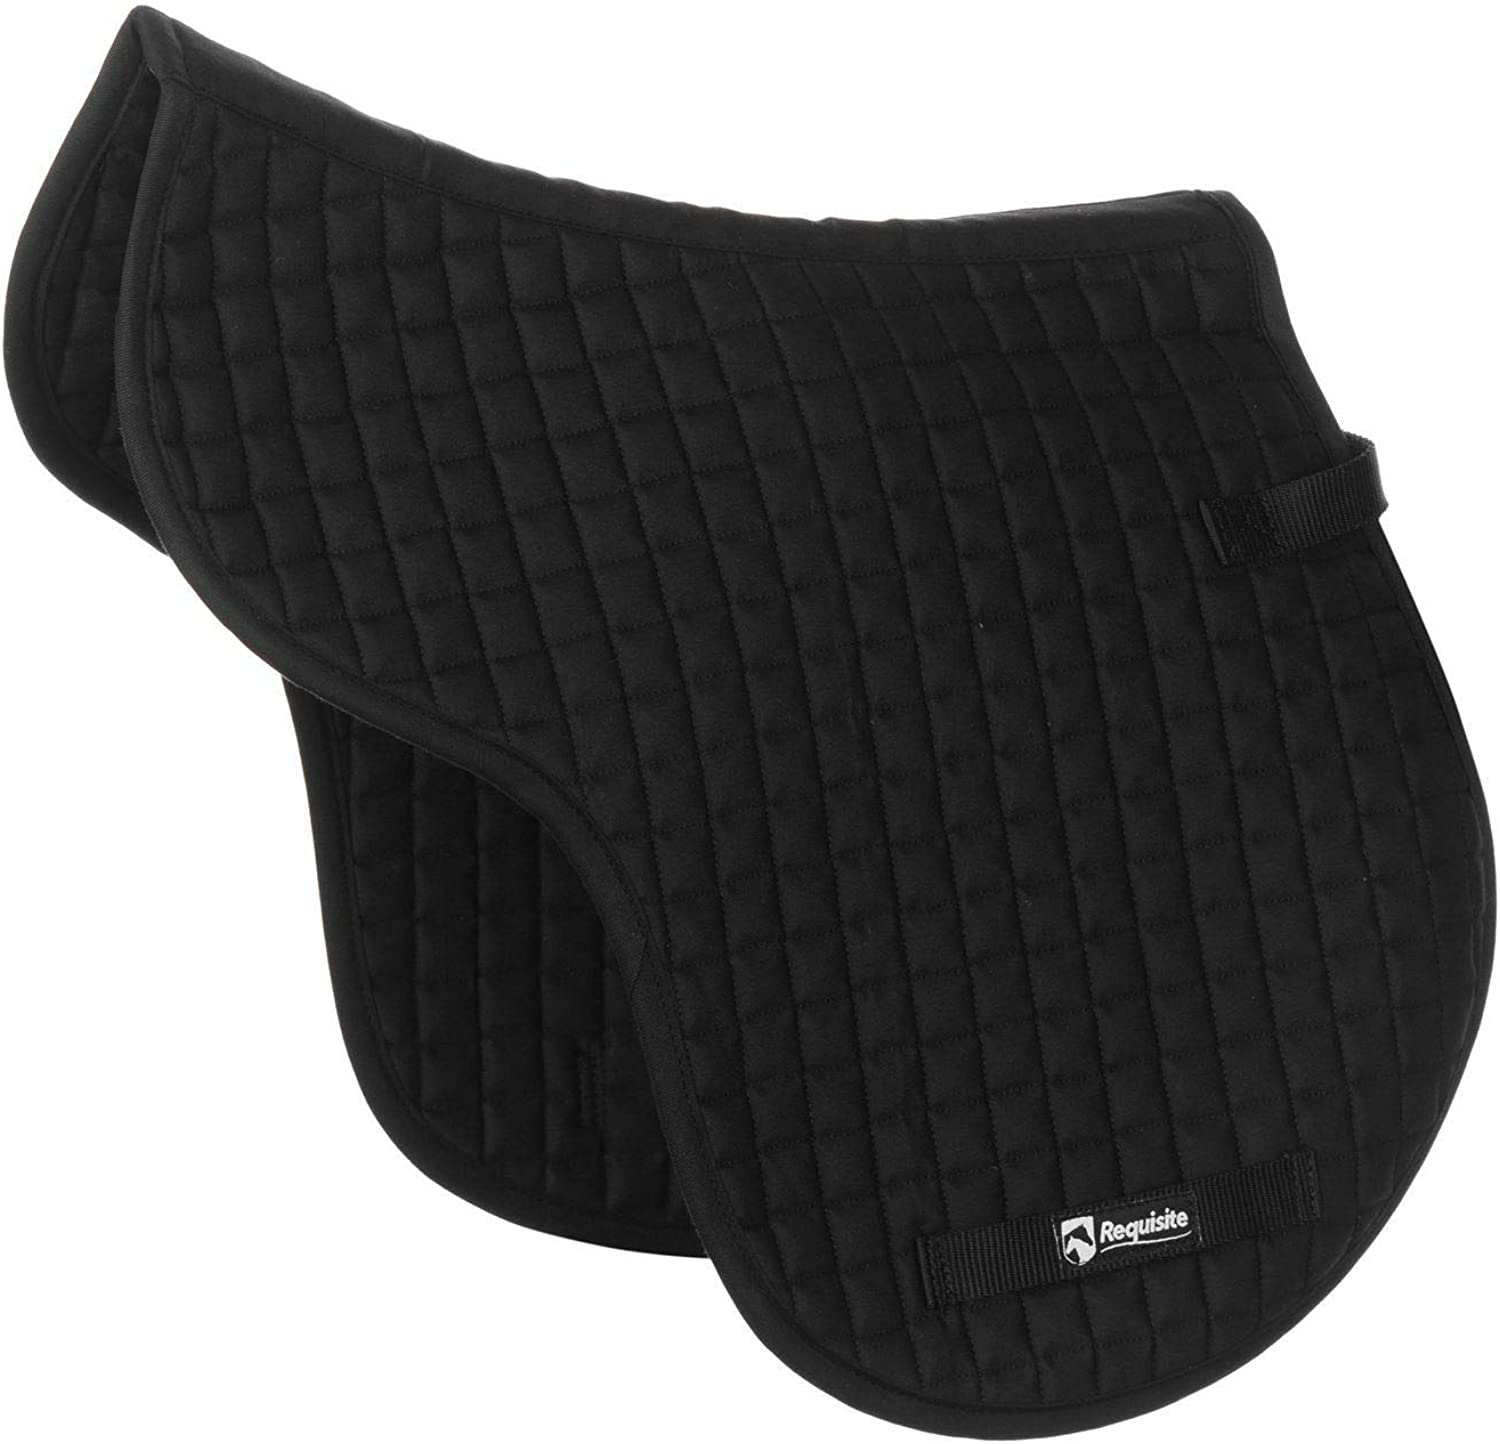 Requisite Everyday Numnah Saddle Pad Cloth Horse Riding Tack